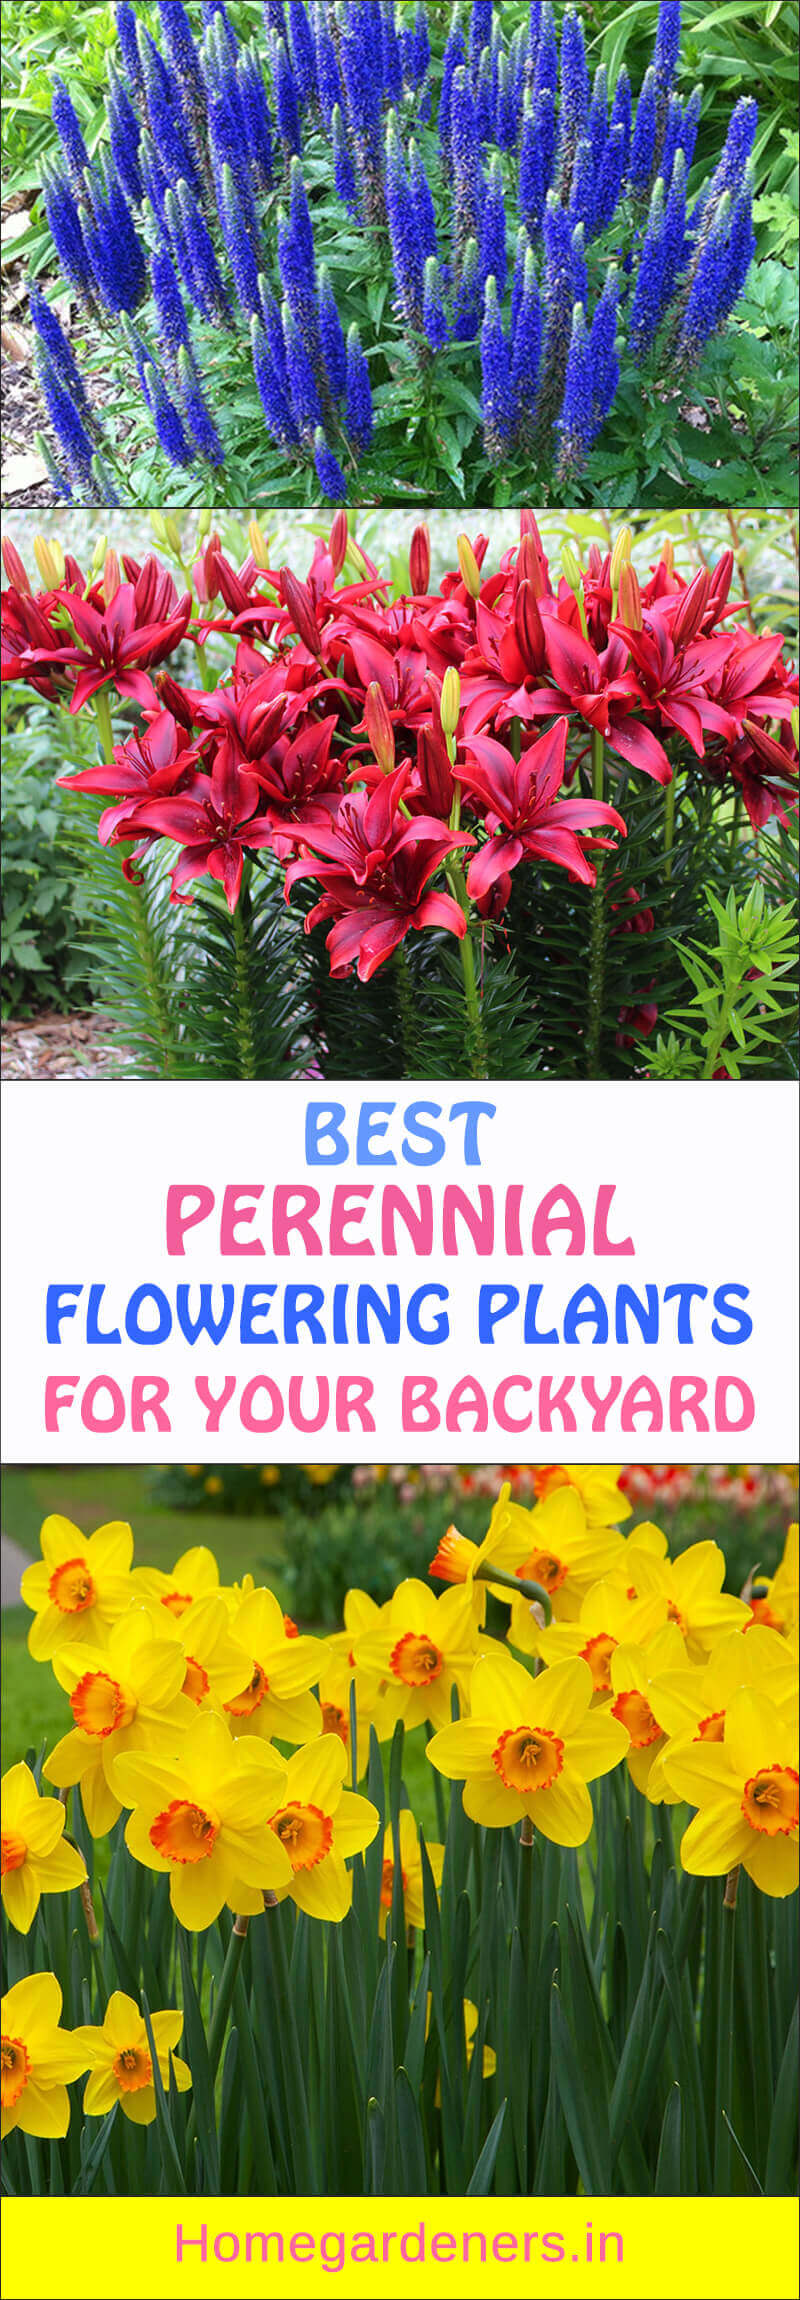 10 best perennial flowering plants for your backyard home gardeners 10 best perennial flowering plants for your backyard mightylinksfo